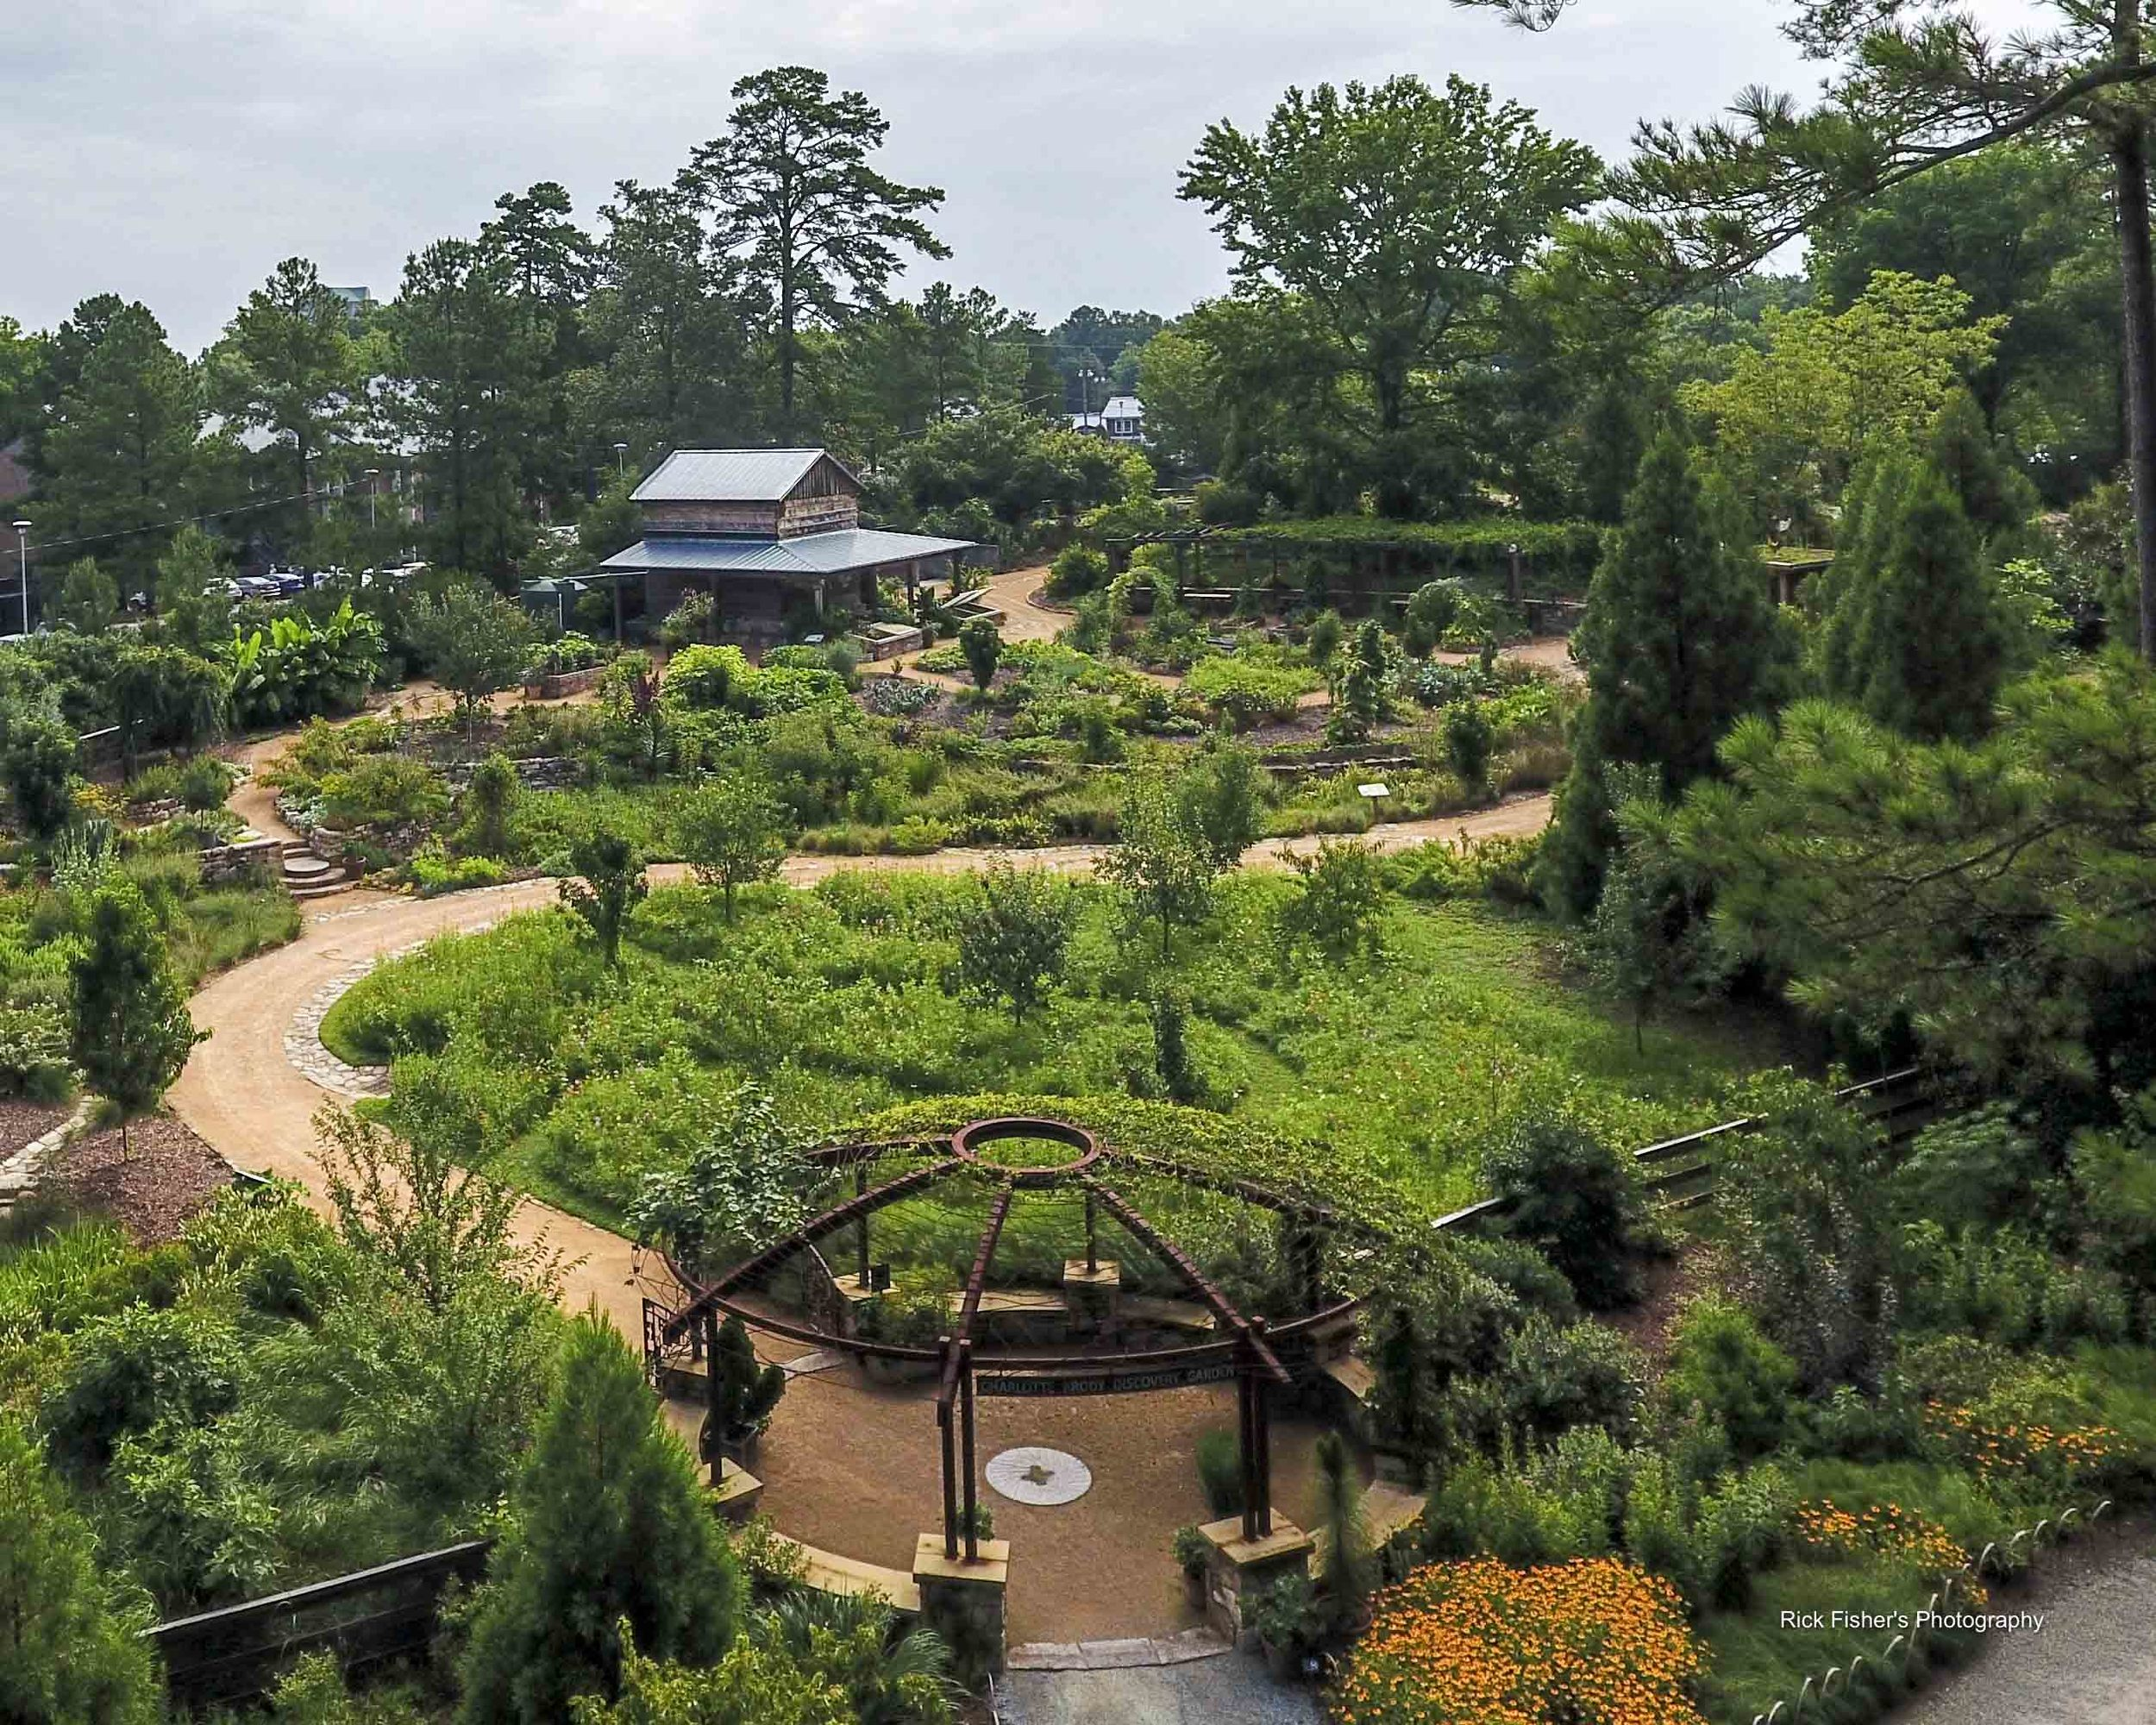 Charlotte Brody Discovery Garden